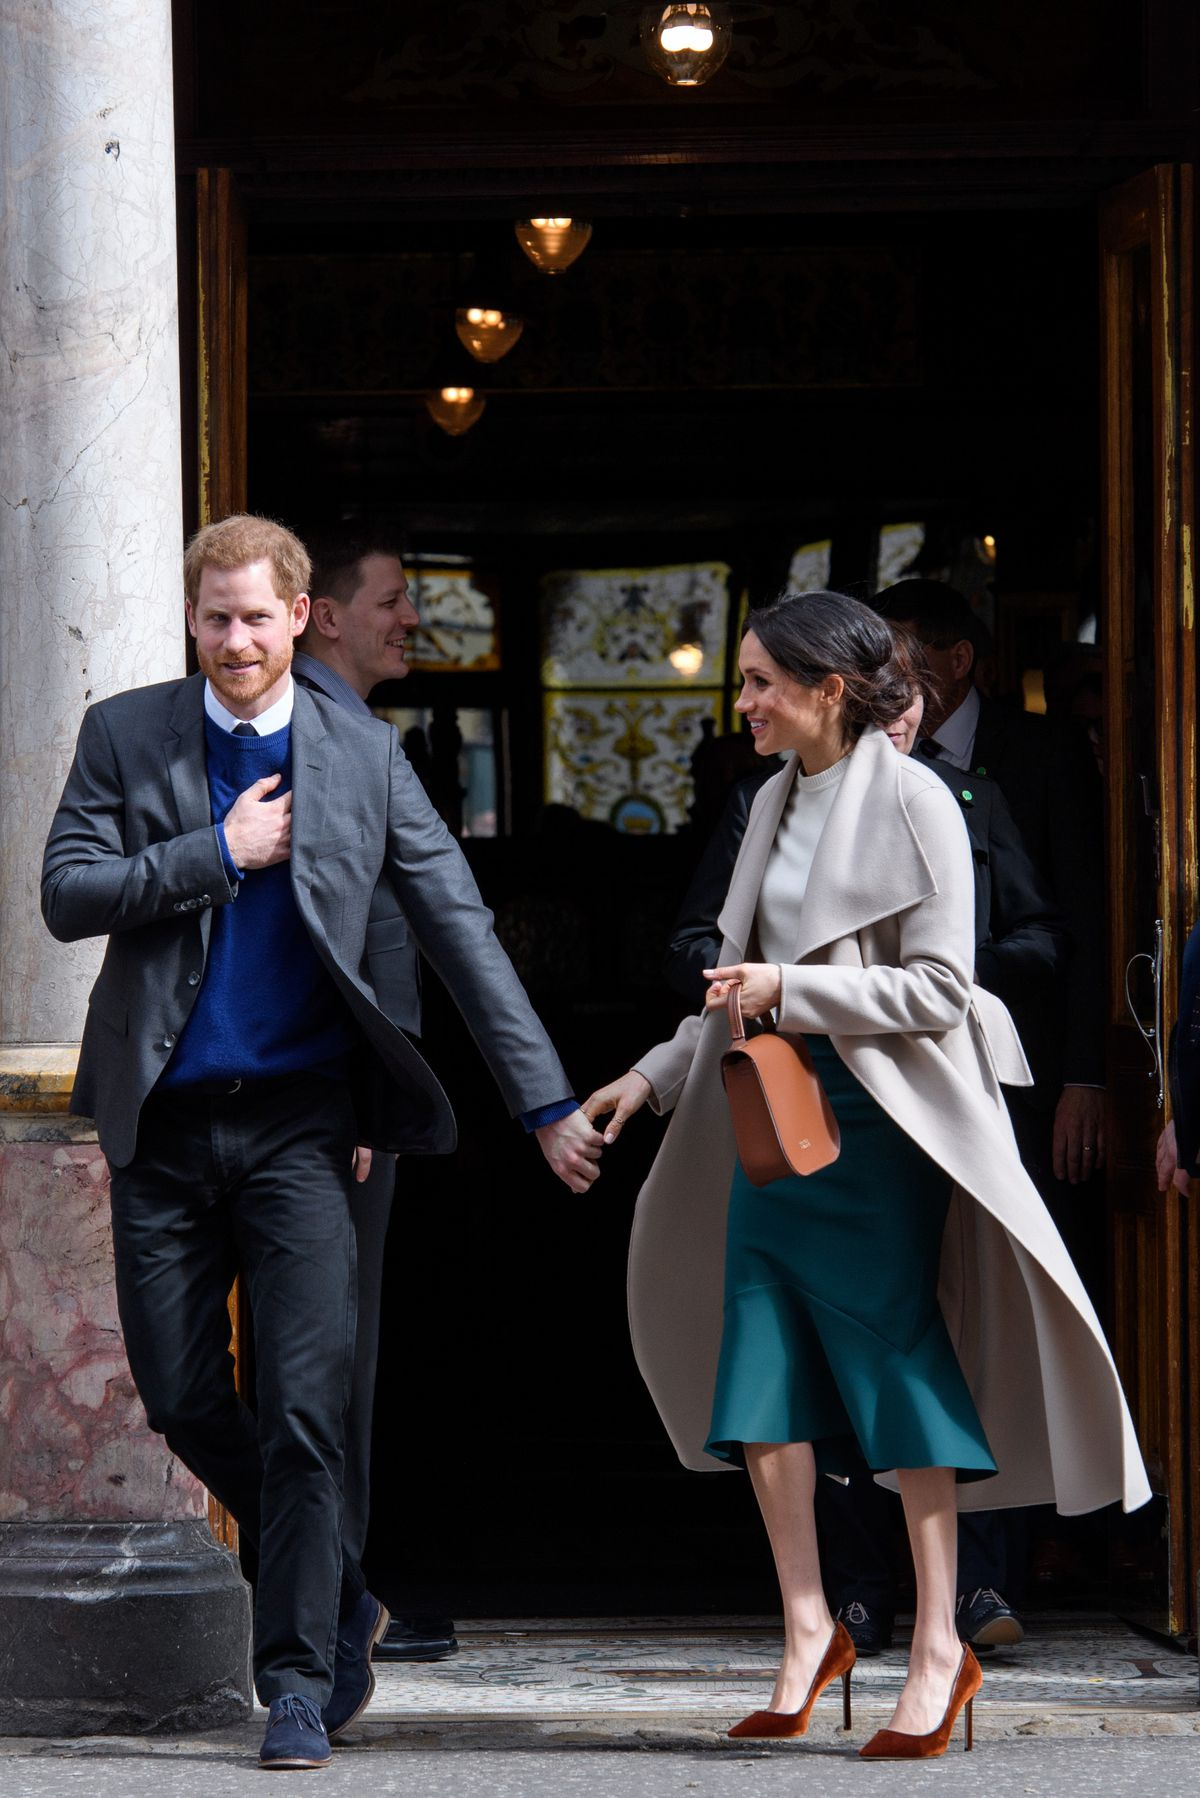 royal wedding prince harry and meghan markle s big day explained vox